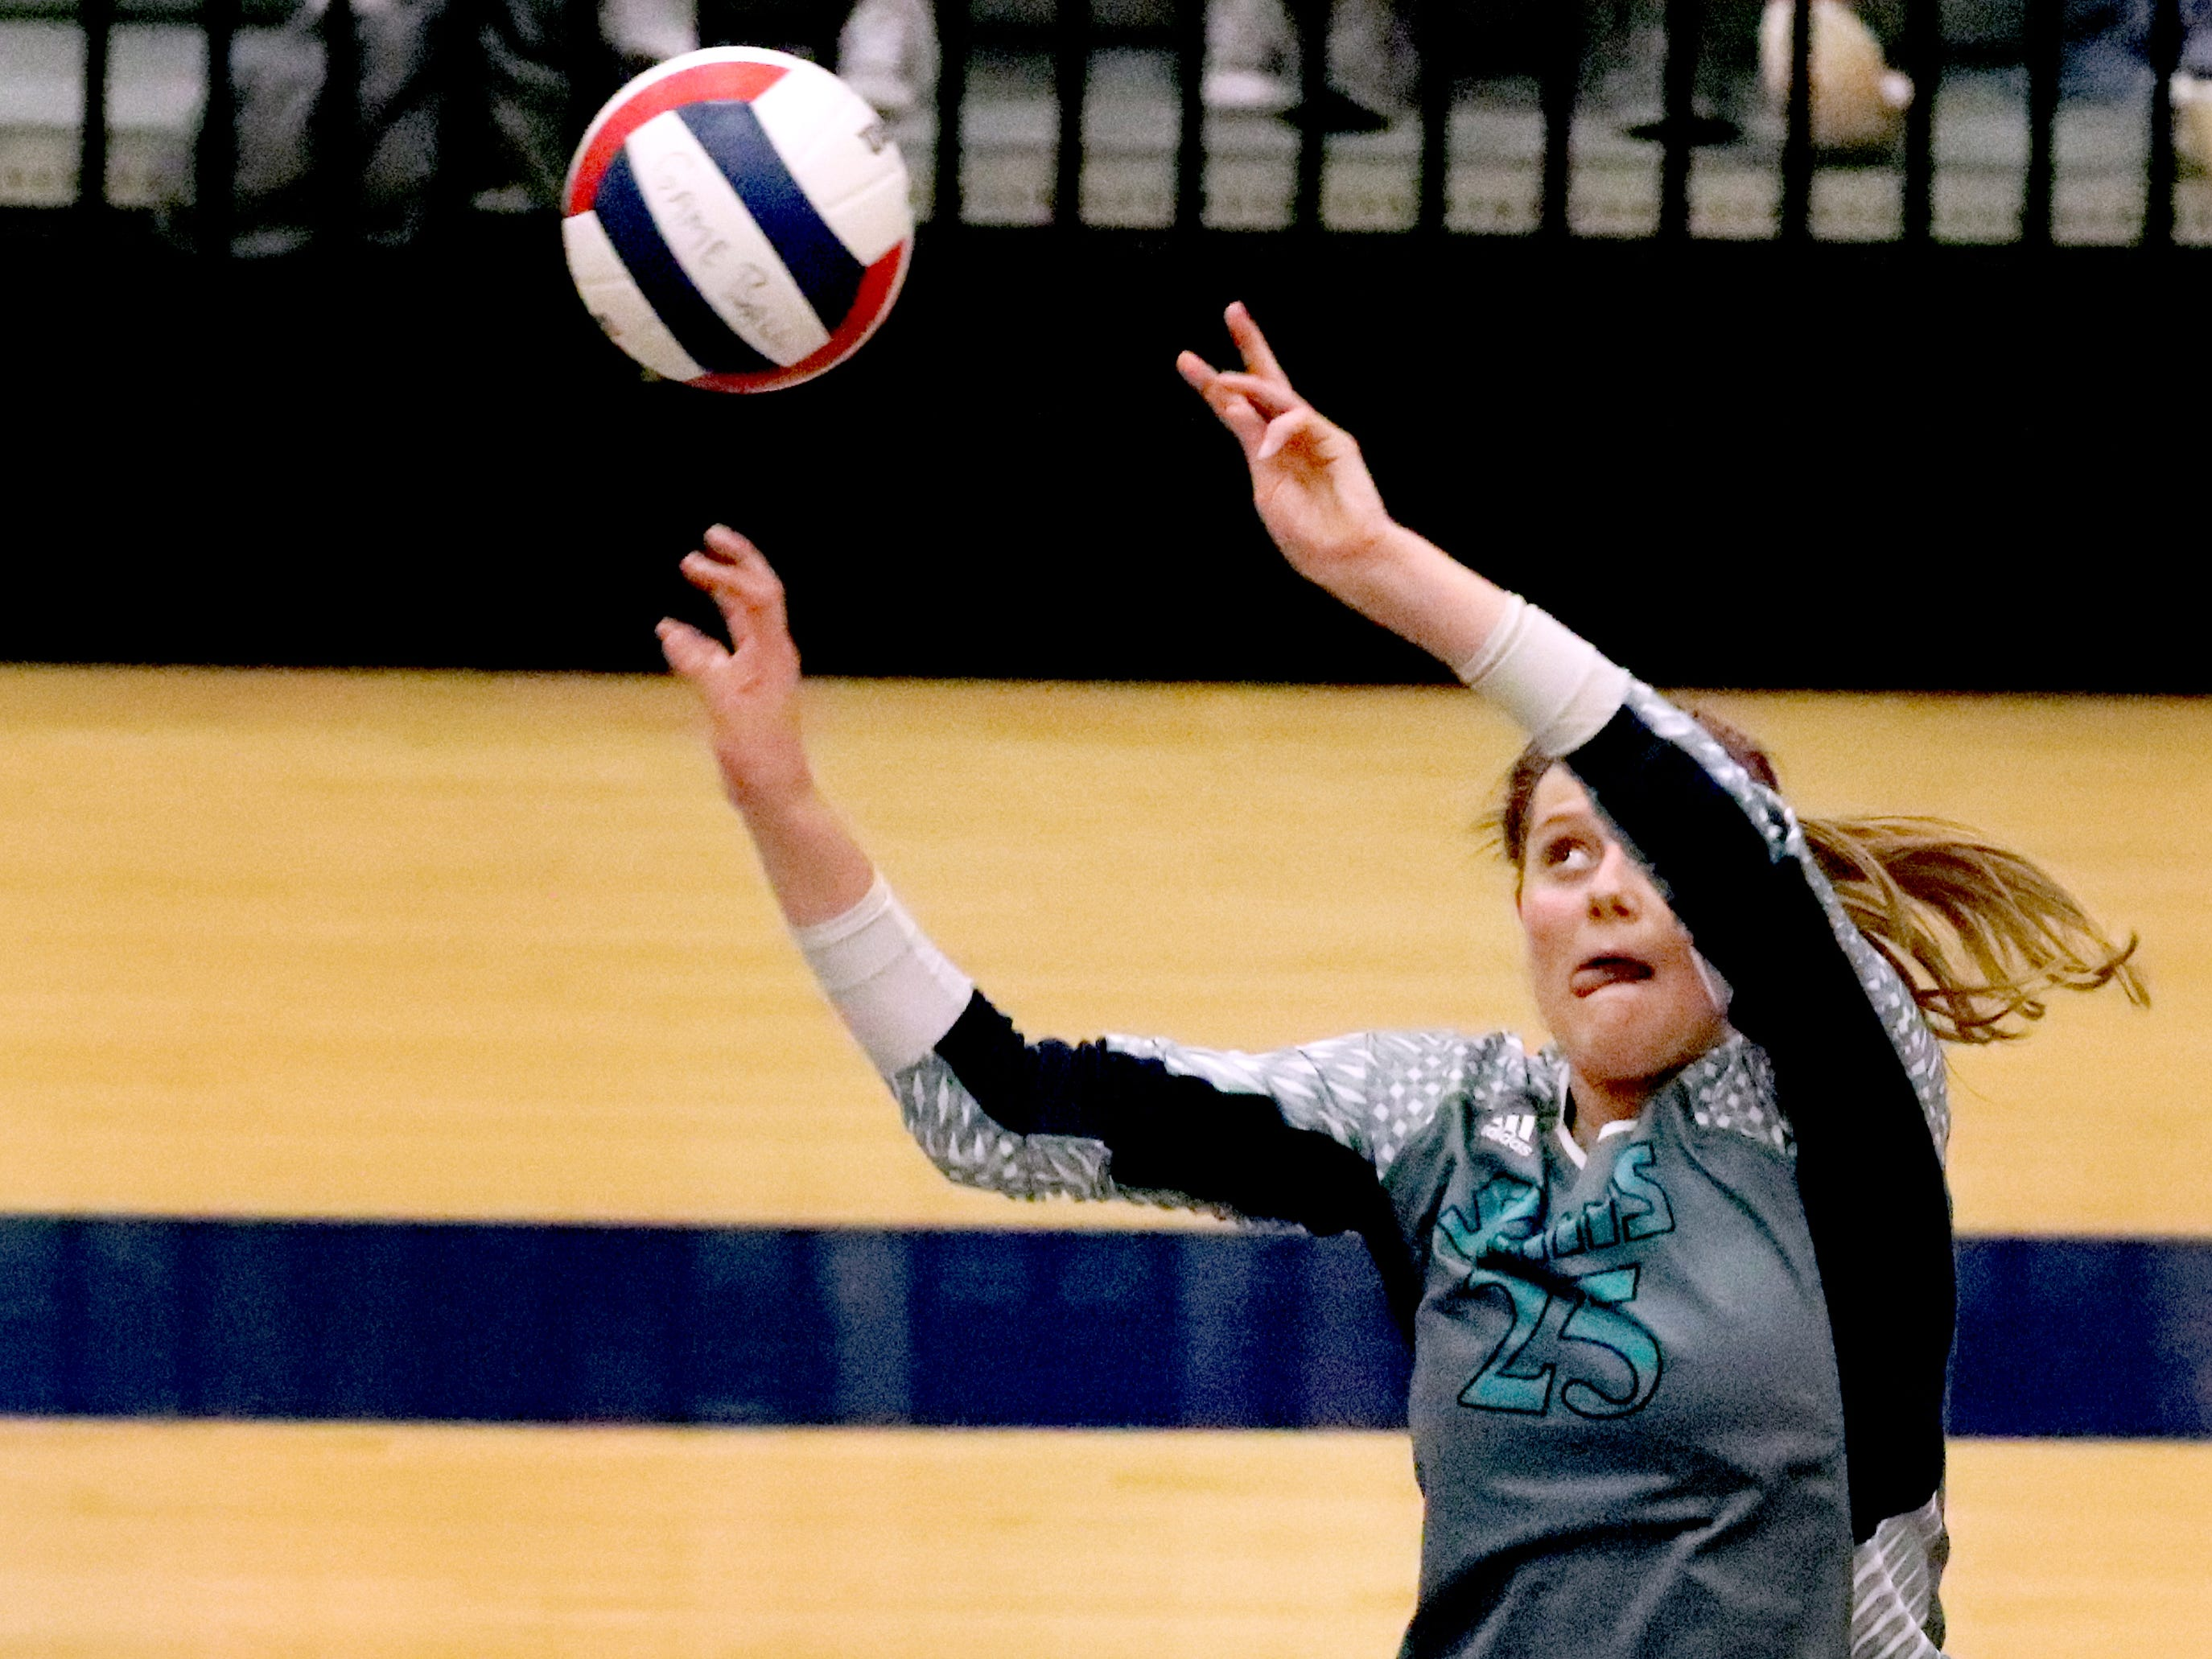 Siegel's Sophia Bossong (25) hits the ball over the net to win their first set at Cleveland during the Class AAA sectional Thursday, Oct. 11, 2018. Siegel beat Cleveland to advance to the State Championship tournament.